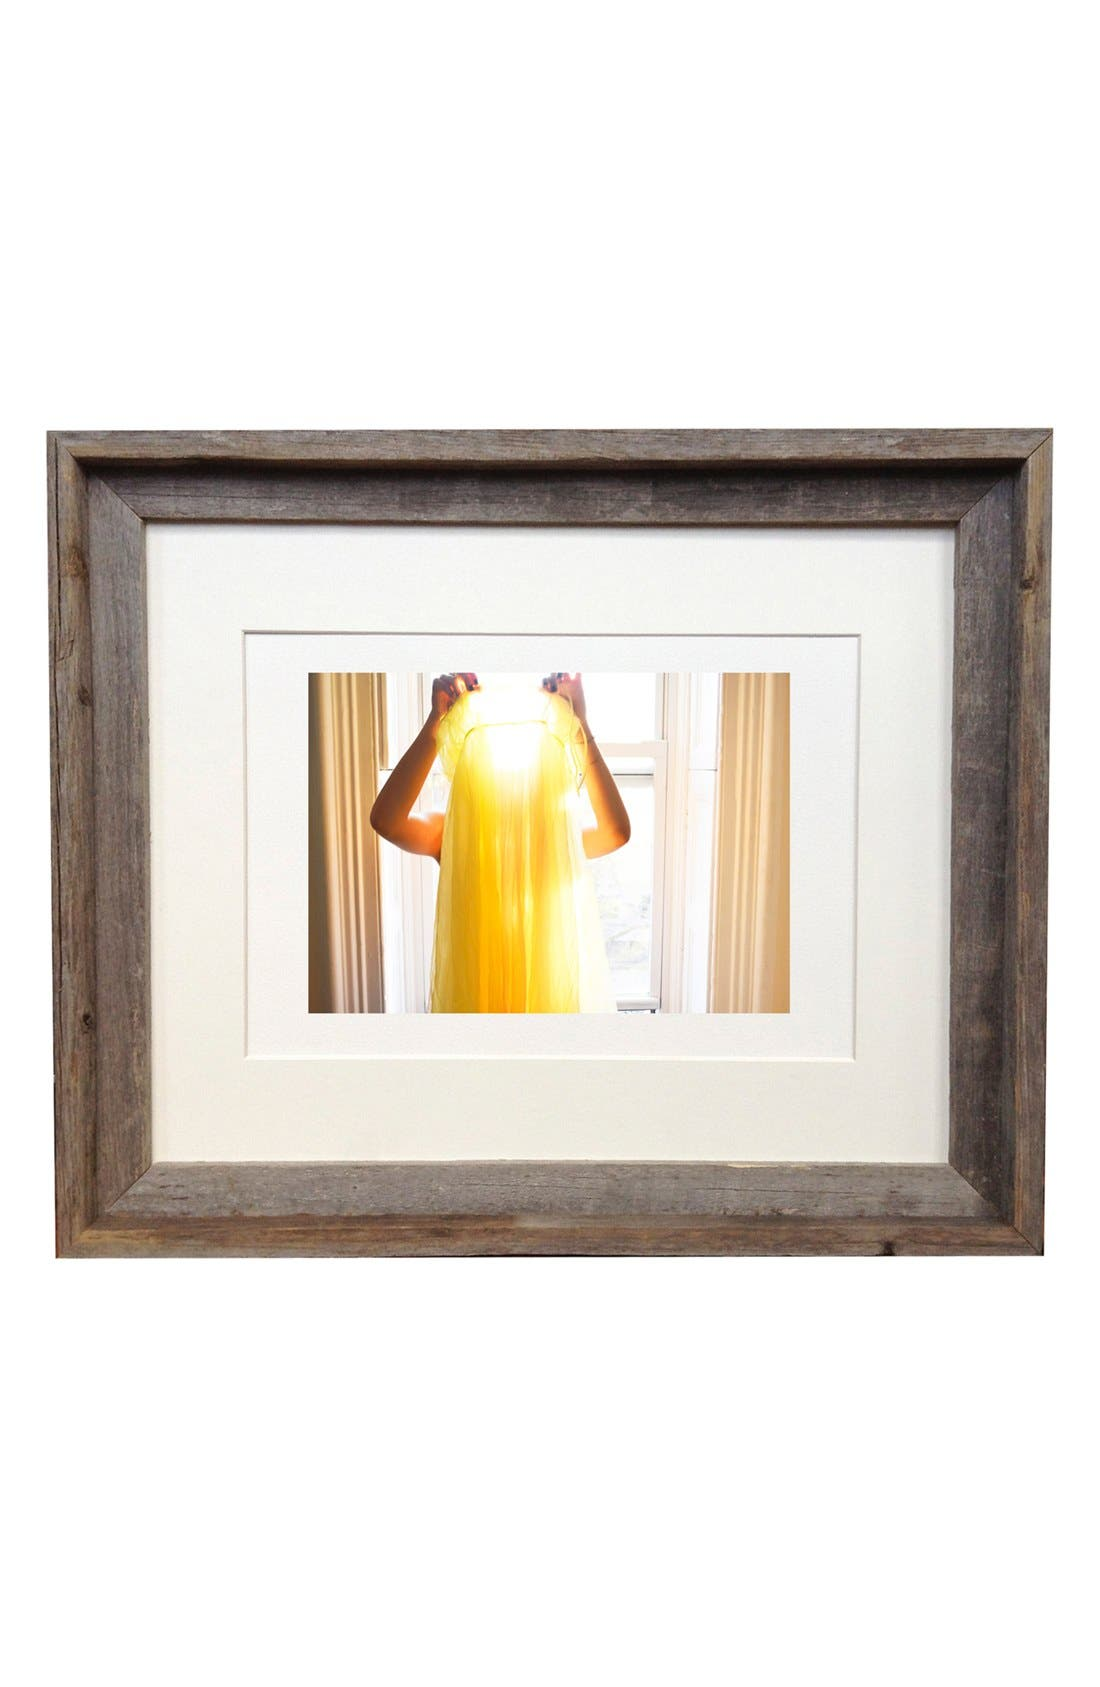 Main Image - She Hit Pause Studios 'Yellow Dress' Wall Art